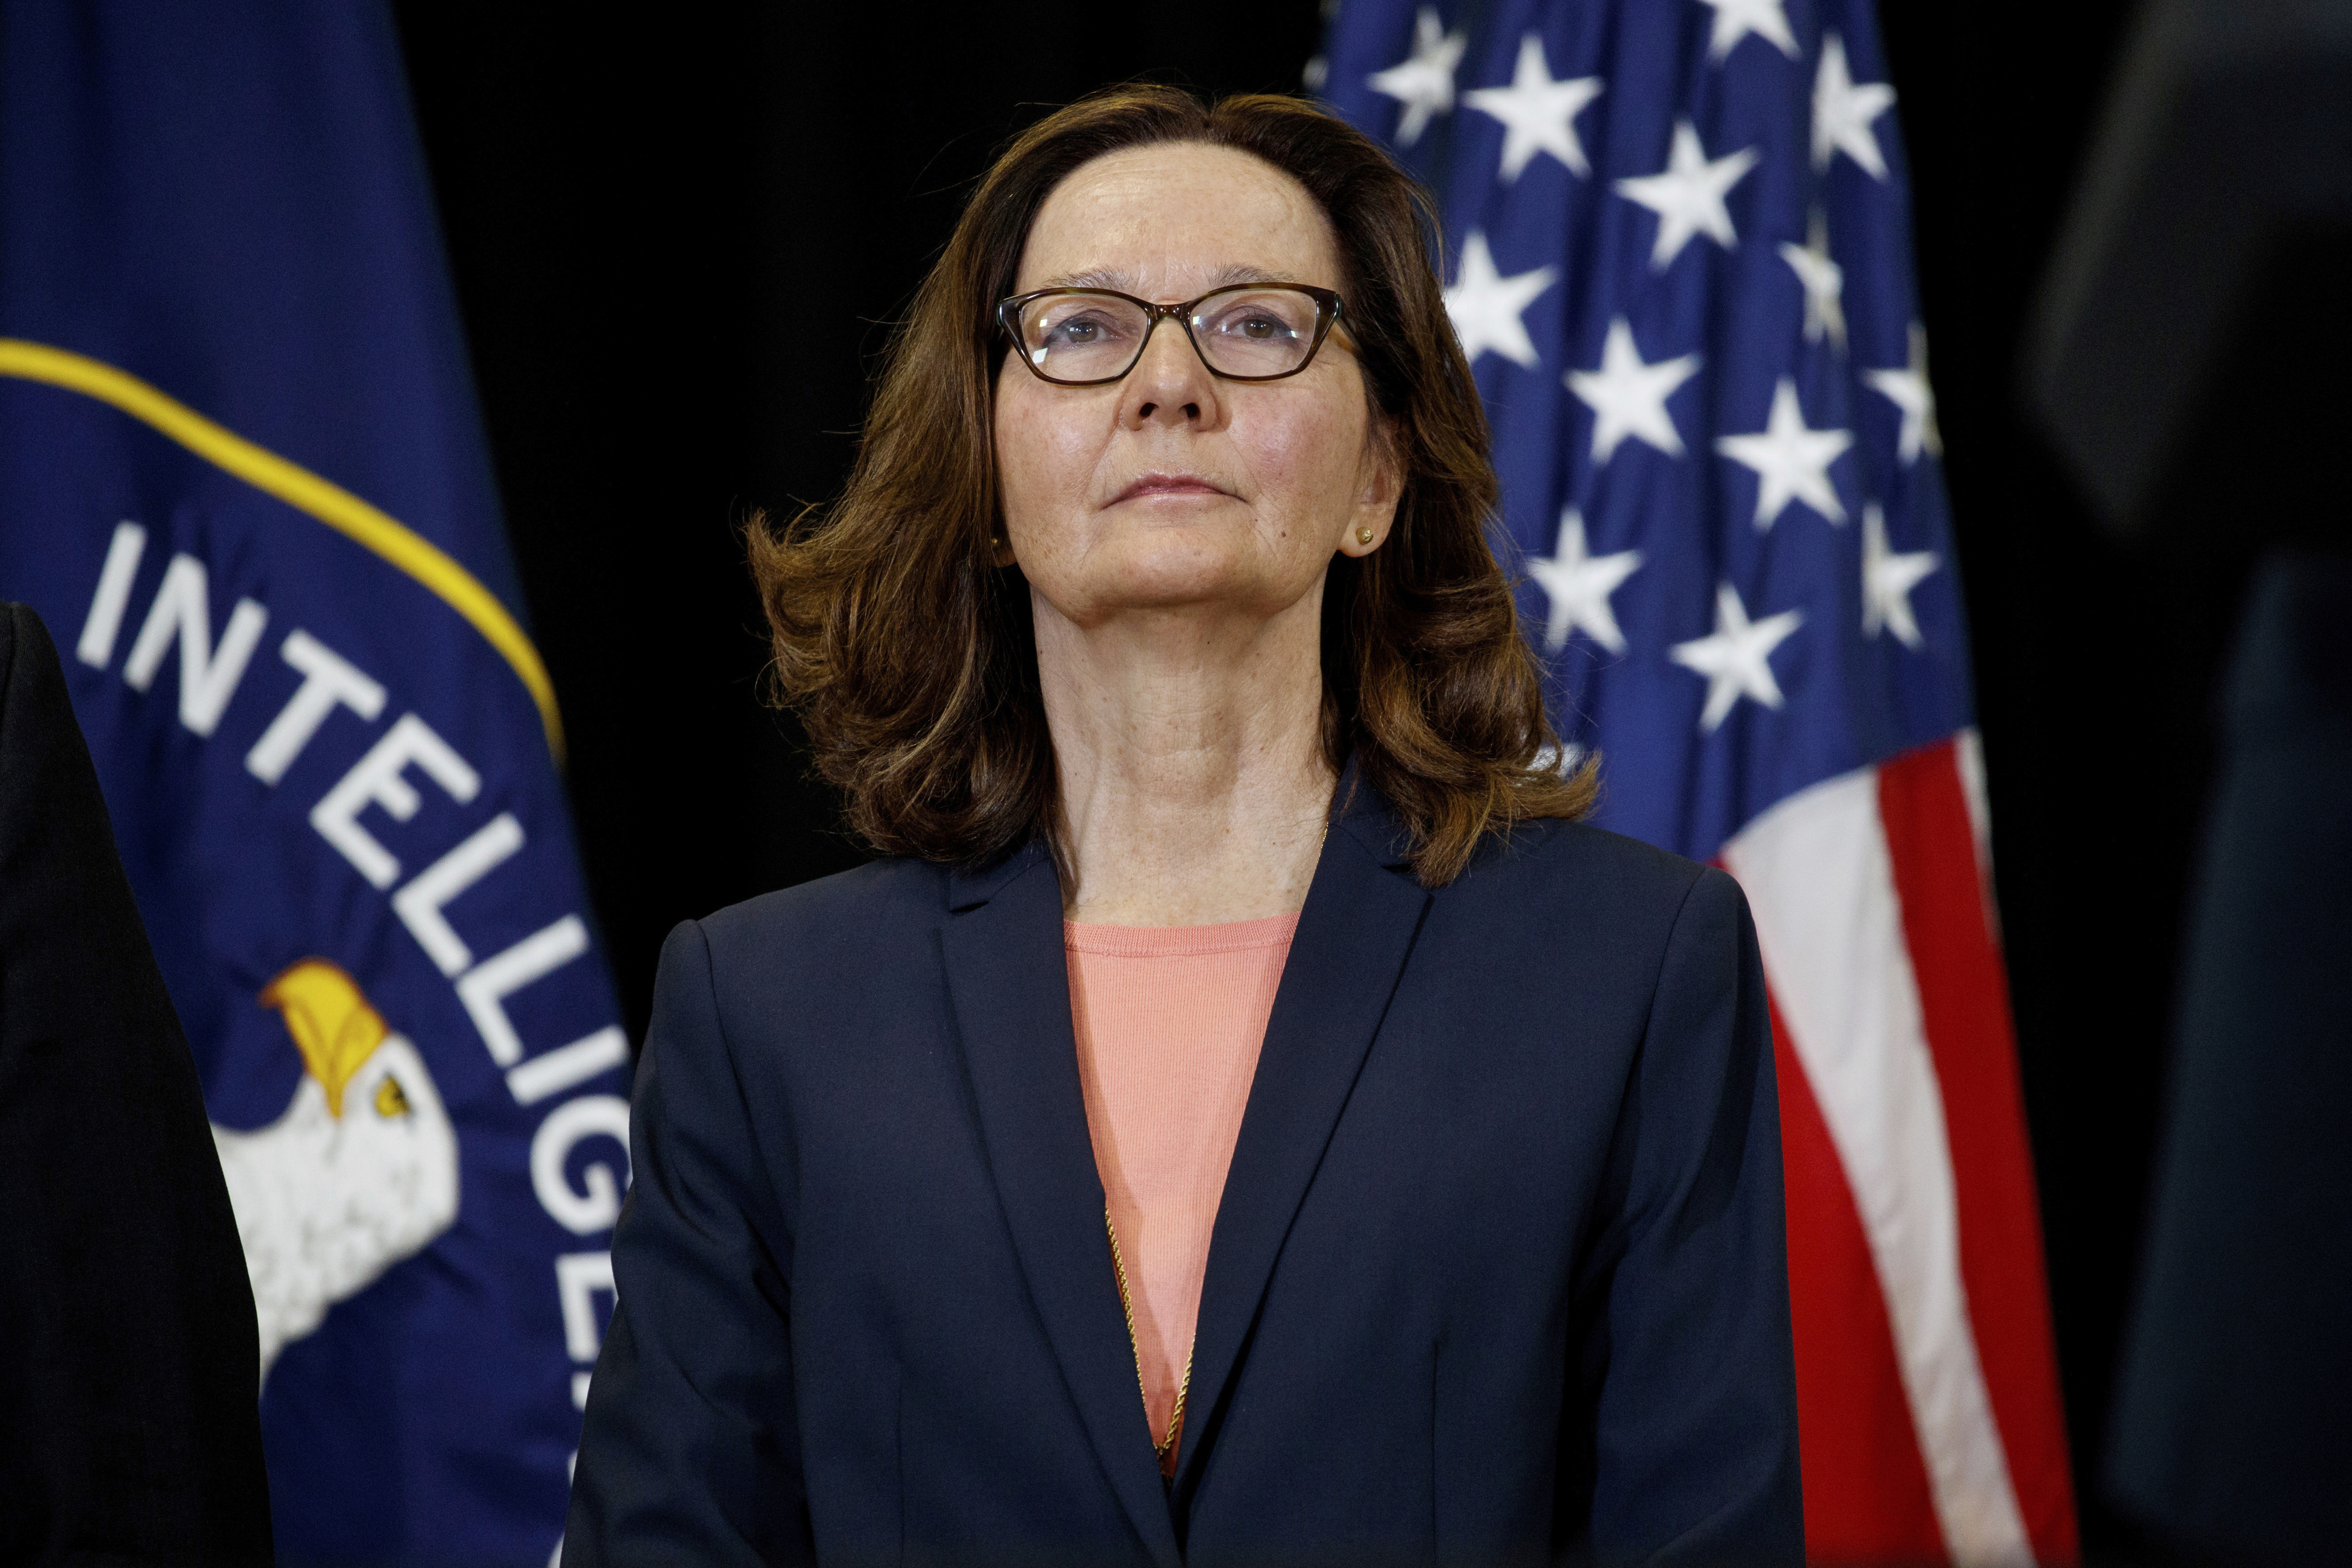 This May 21, 2018 file photo shows incoming Central Intelligence Agency director Gina Haspel at the agency's headquarters in Langley, Va.